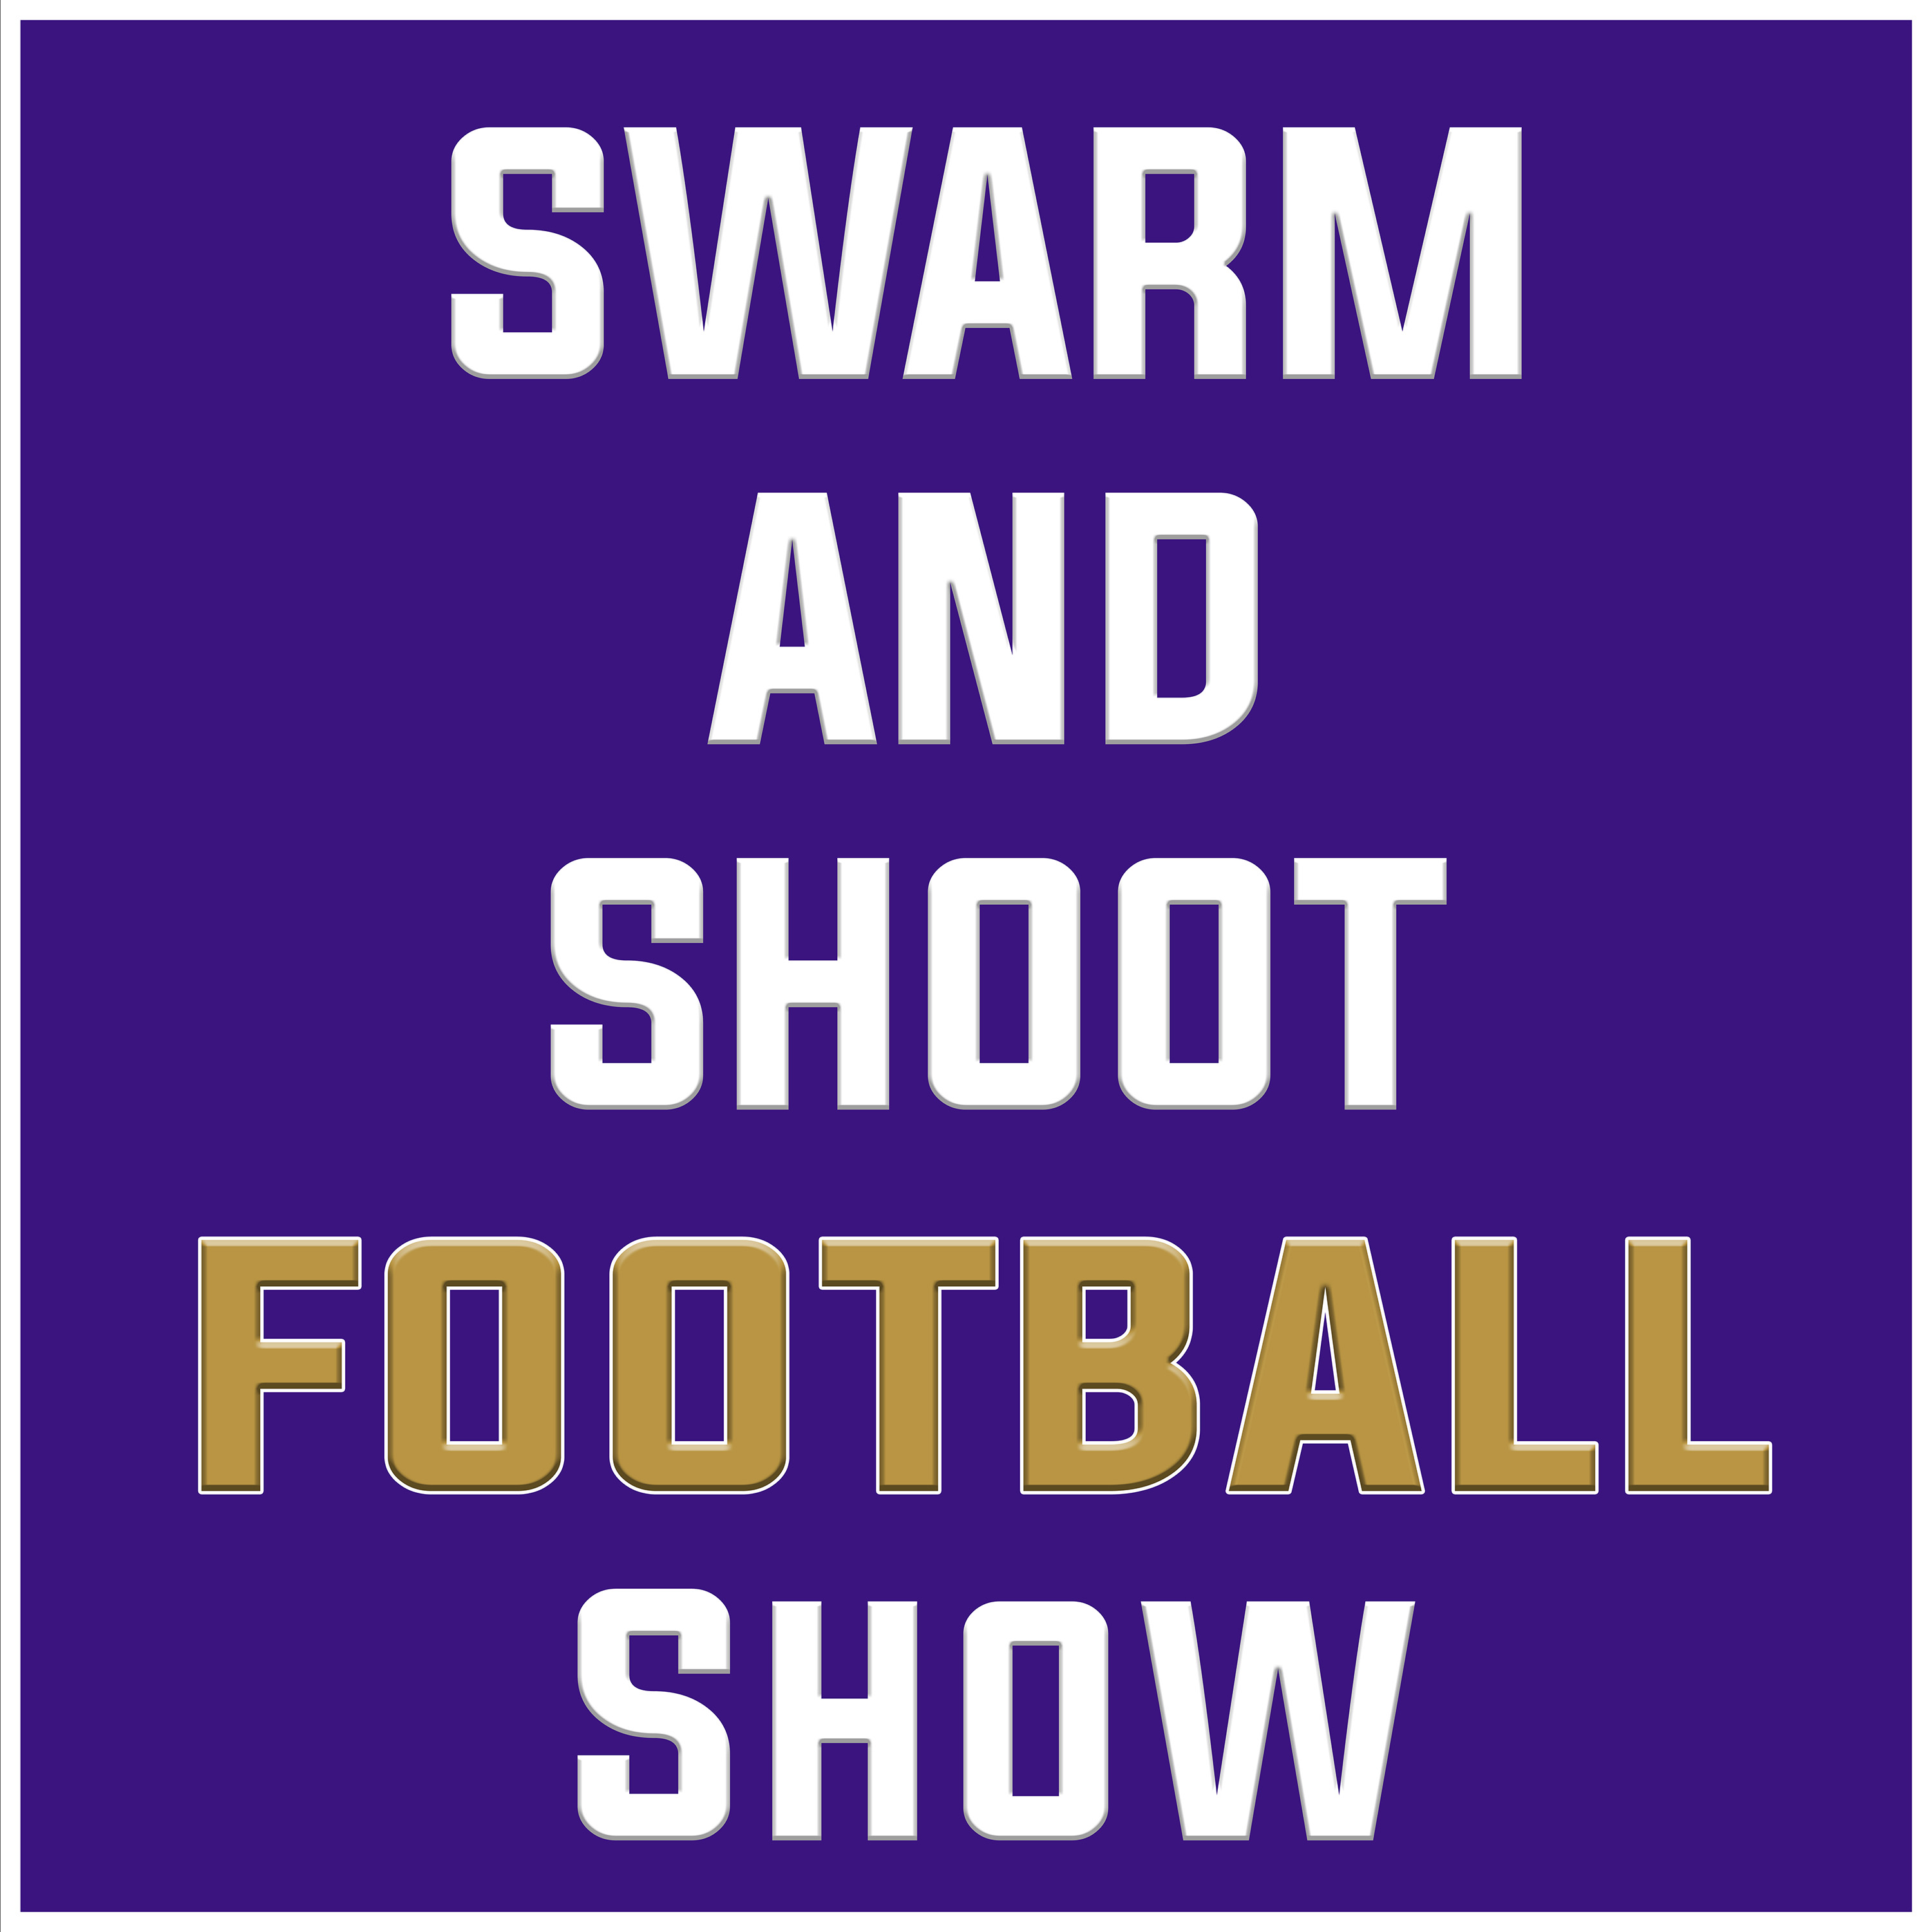 Swarm and Shoot Football Show